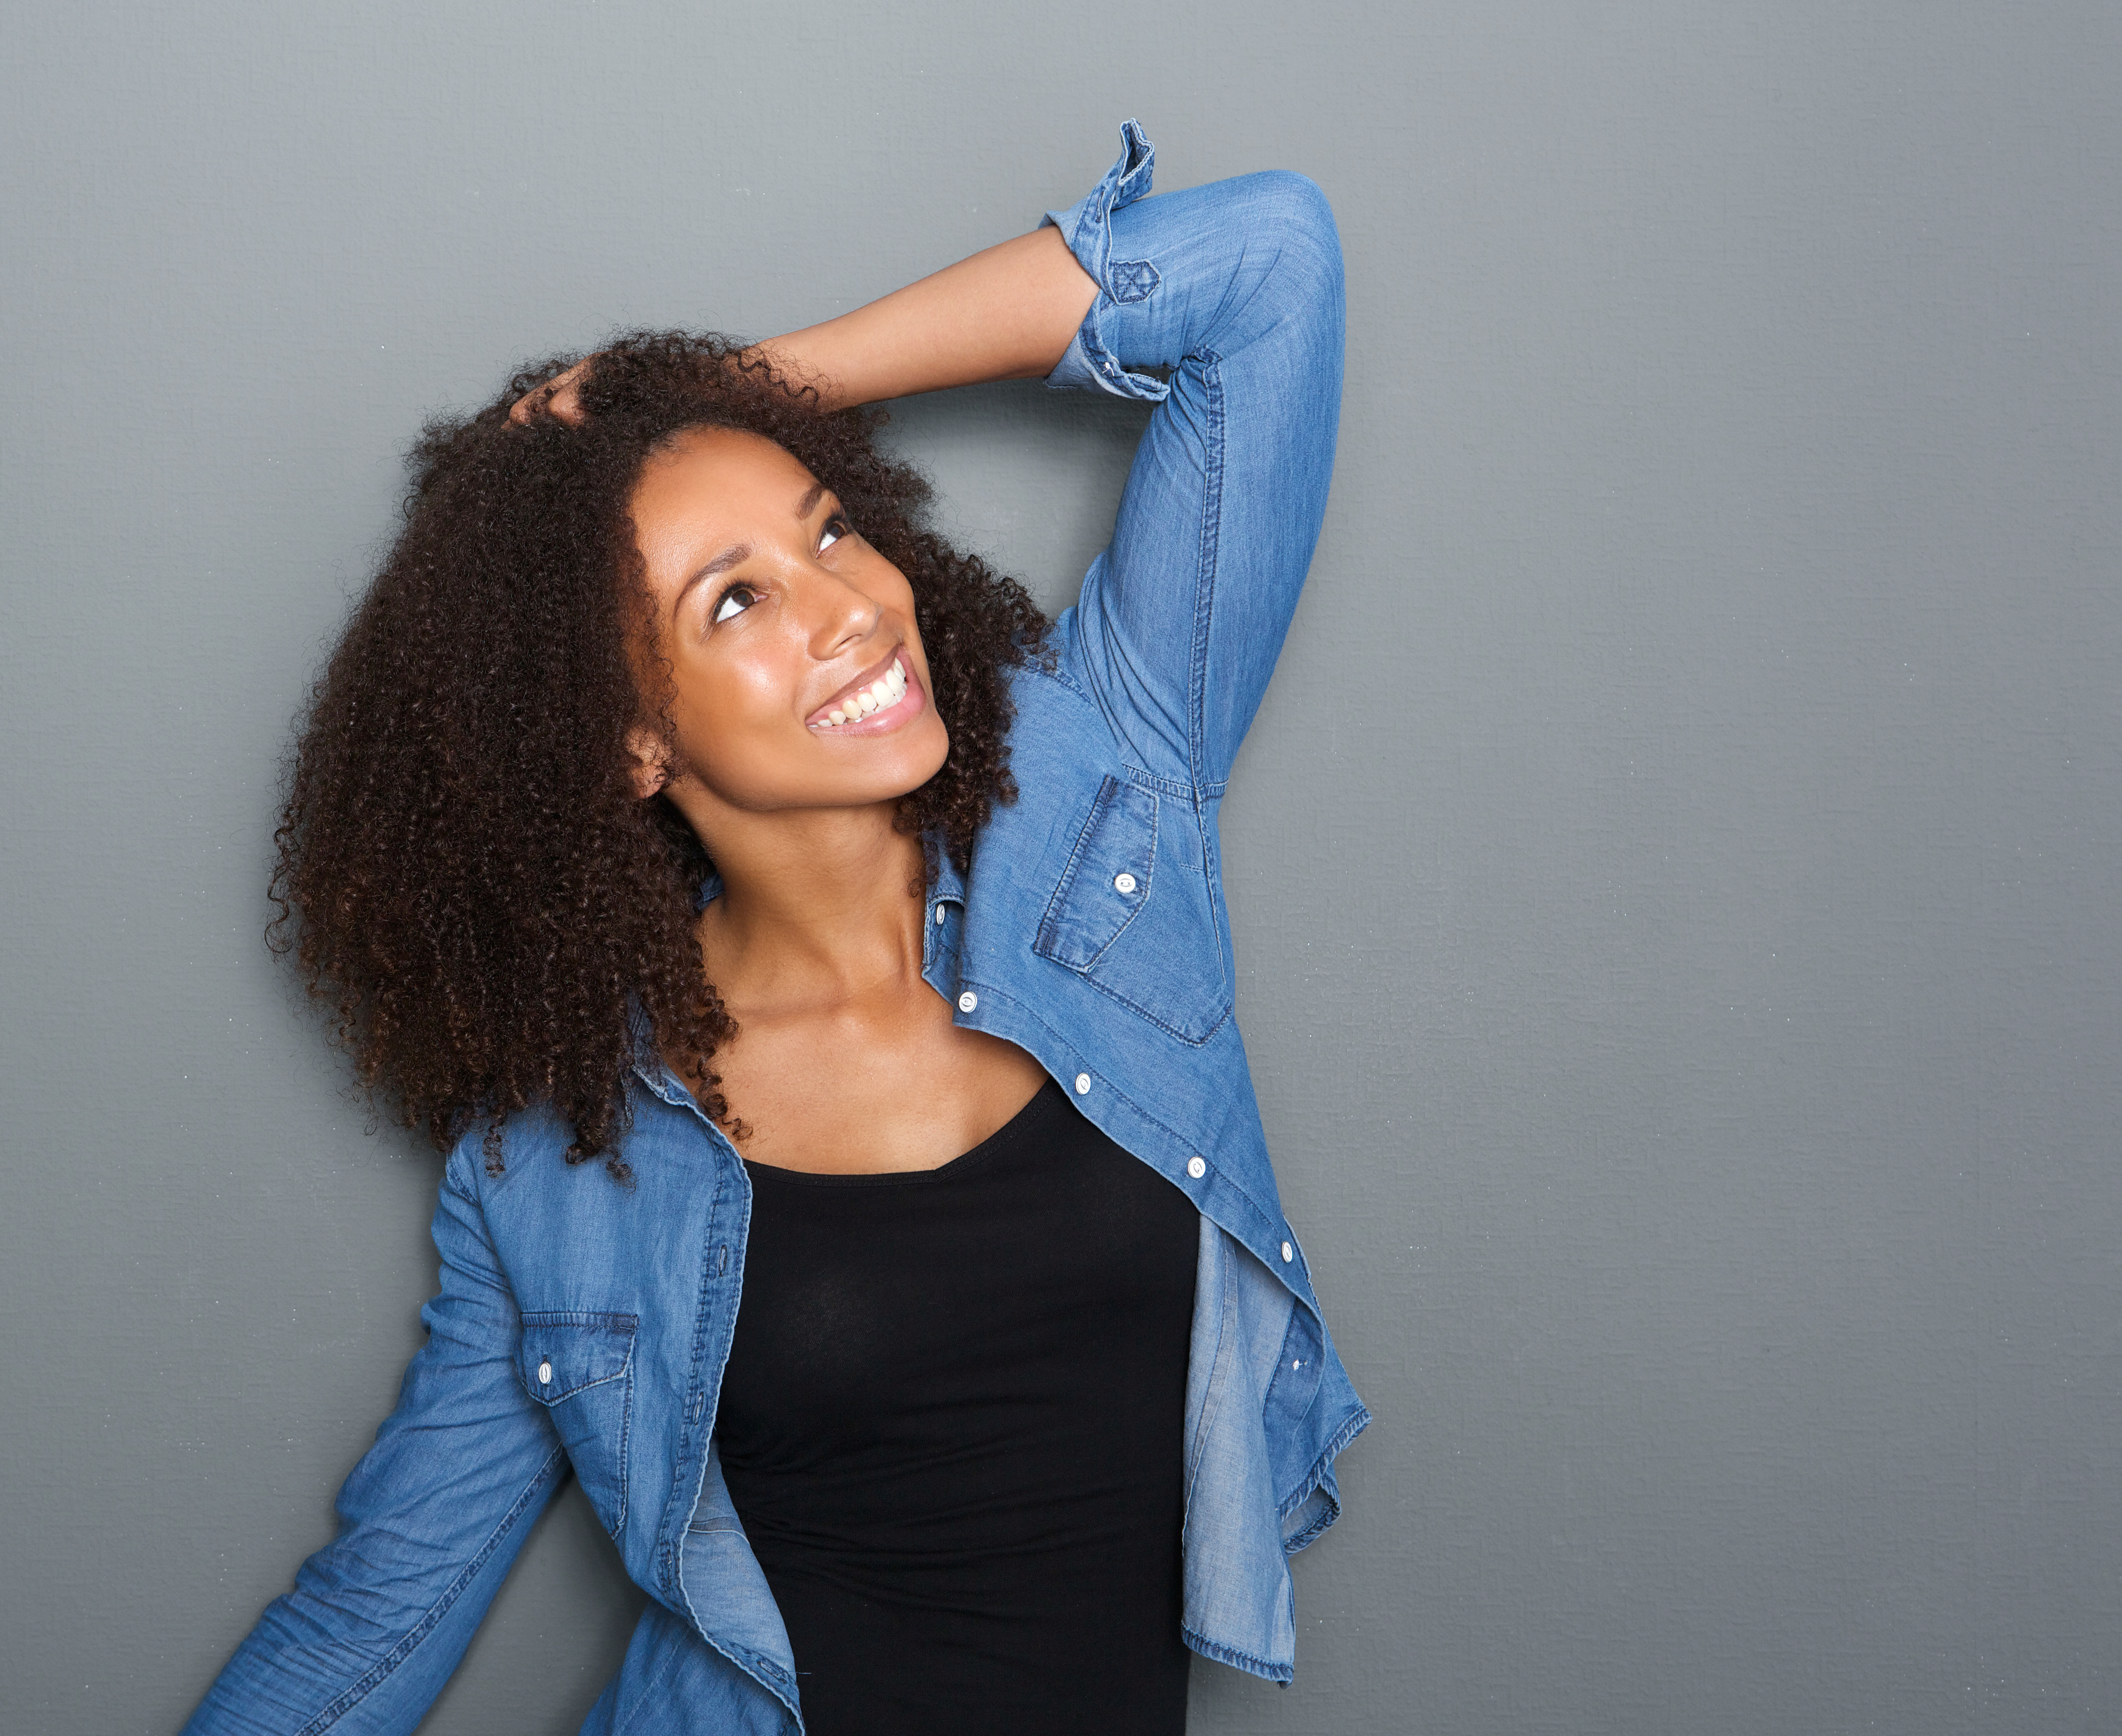 Get Rid of Gray Hair Naturally With Potato Skins! | HuffPost